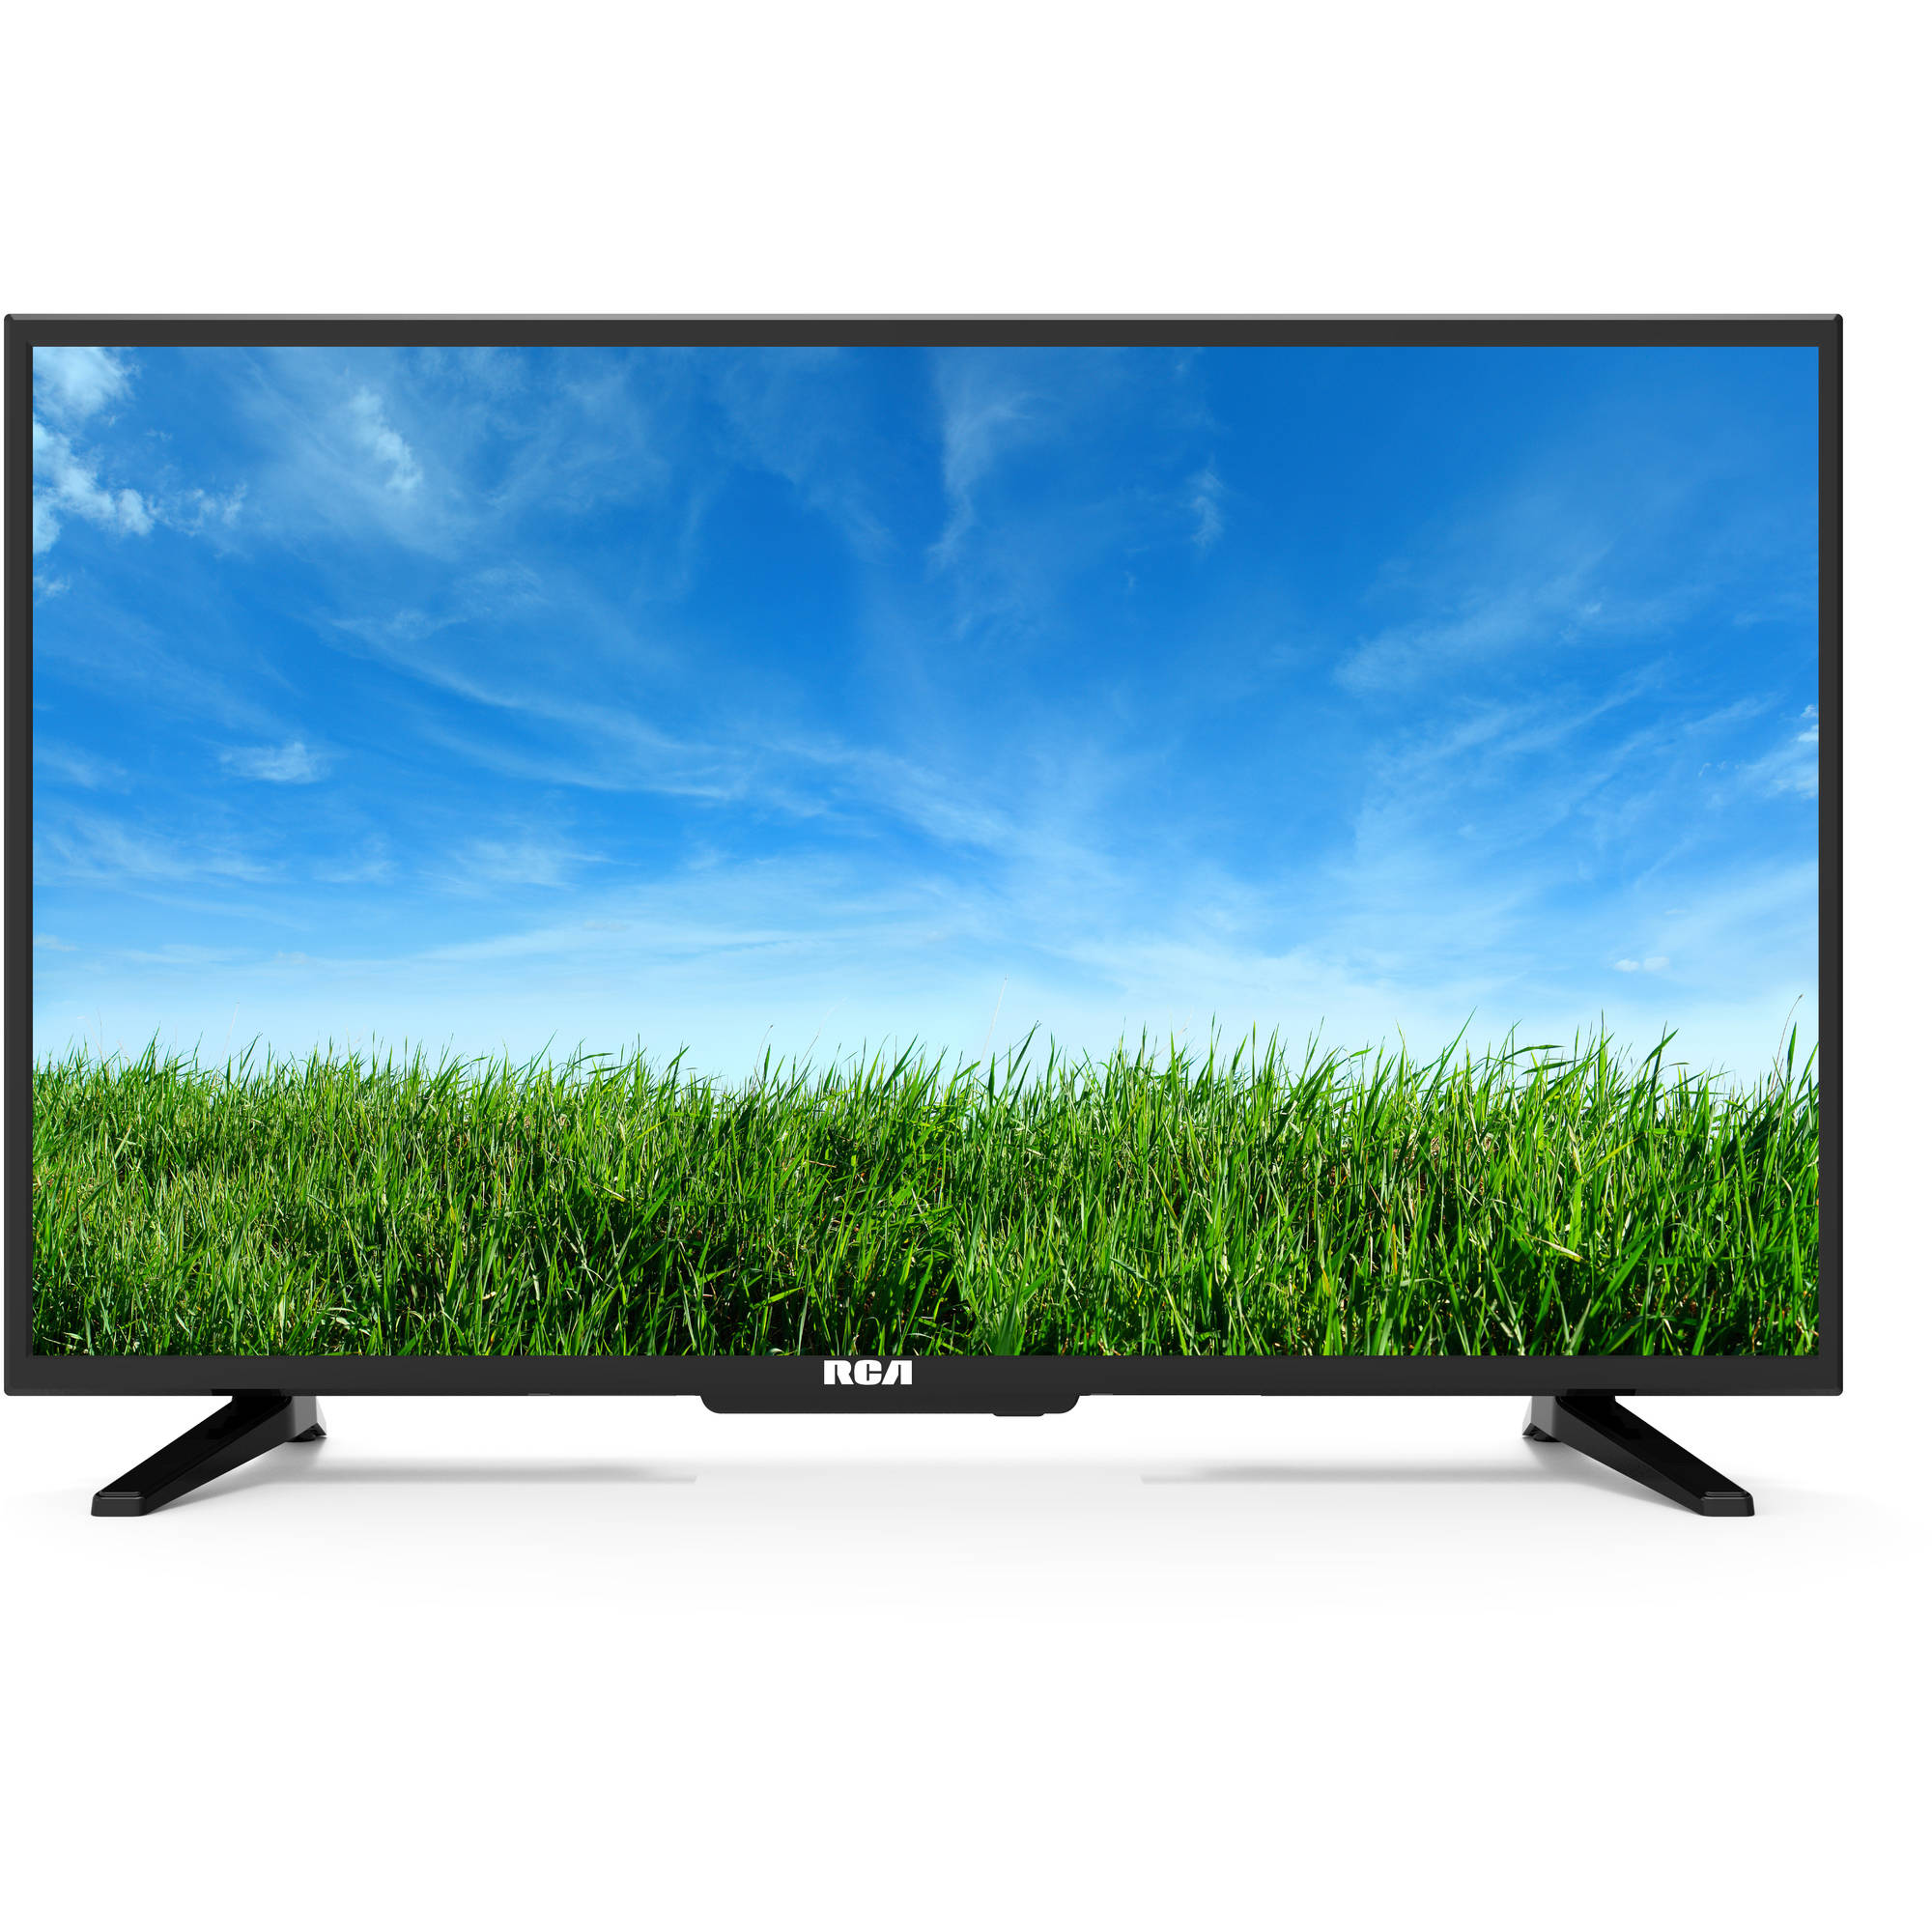 "RCA 32"" Class FHD (1080P) LED TV (RLDEDV3289) with Built-in DVD by RCA"